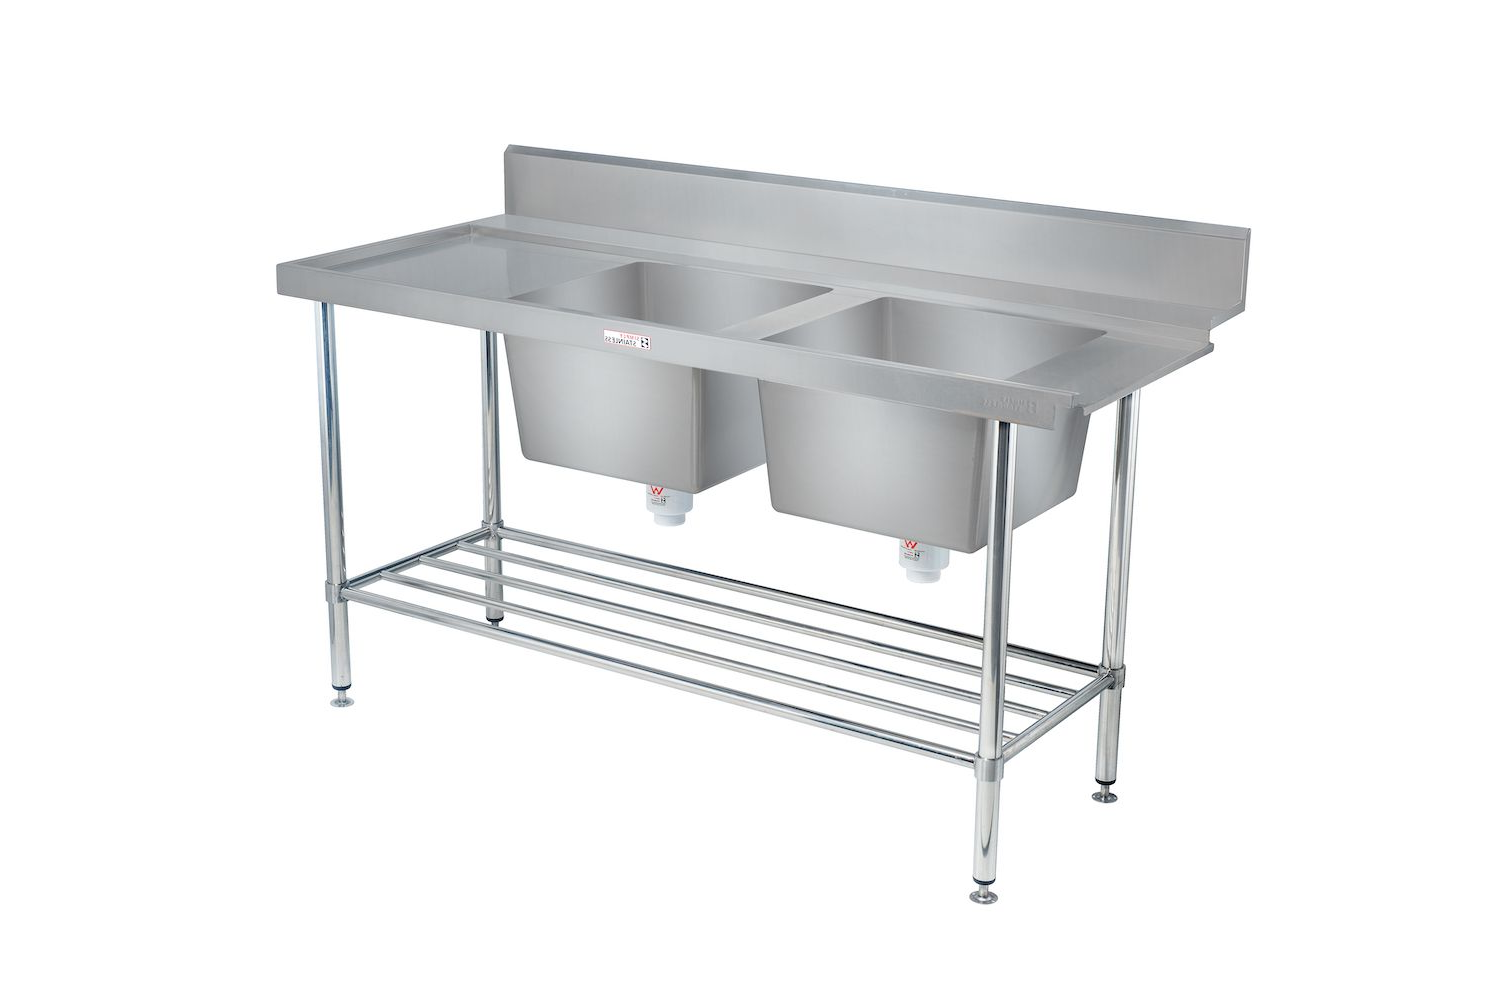 Simply Stainless Dishwash Table & Double Bowl Sink - SS091650DBL